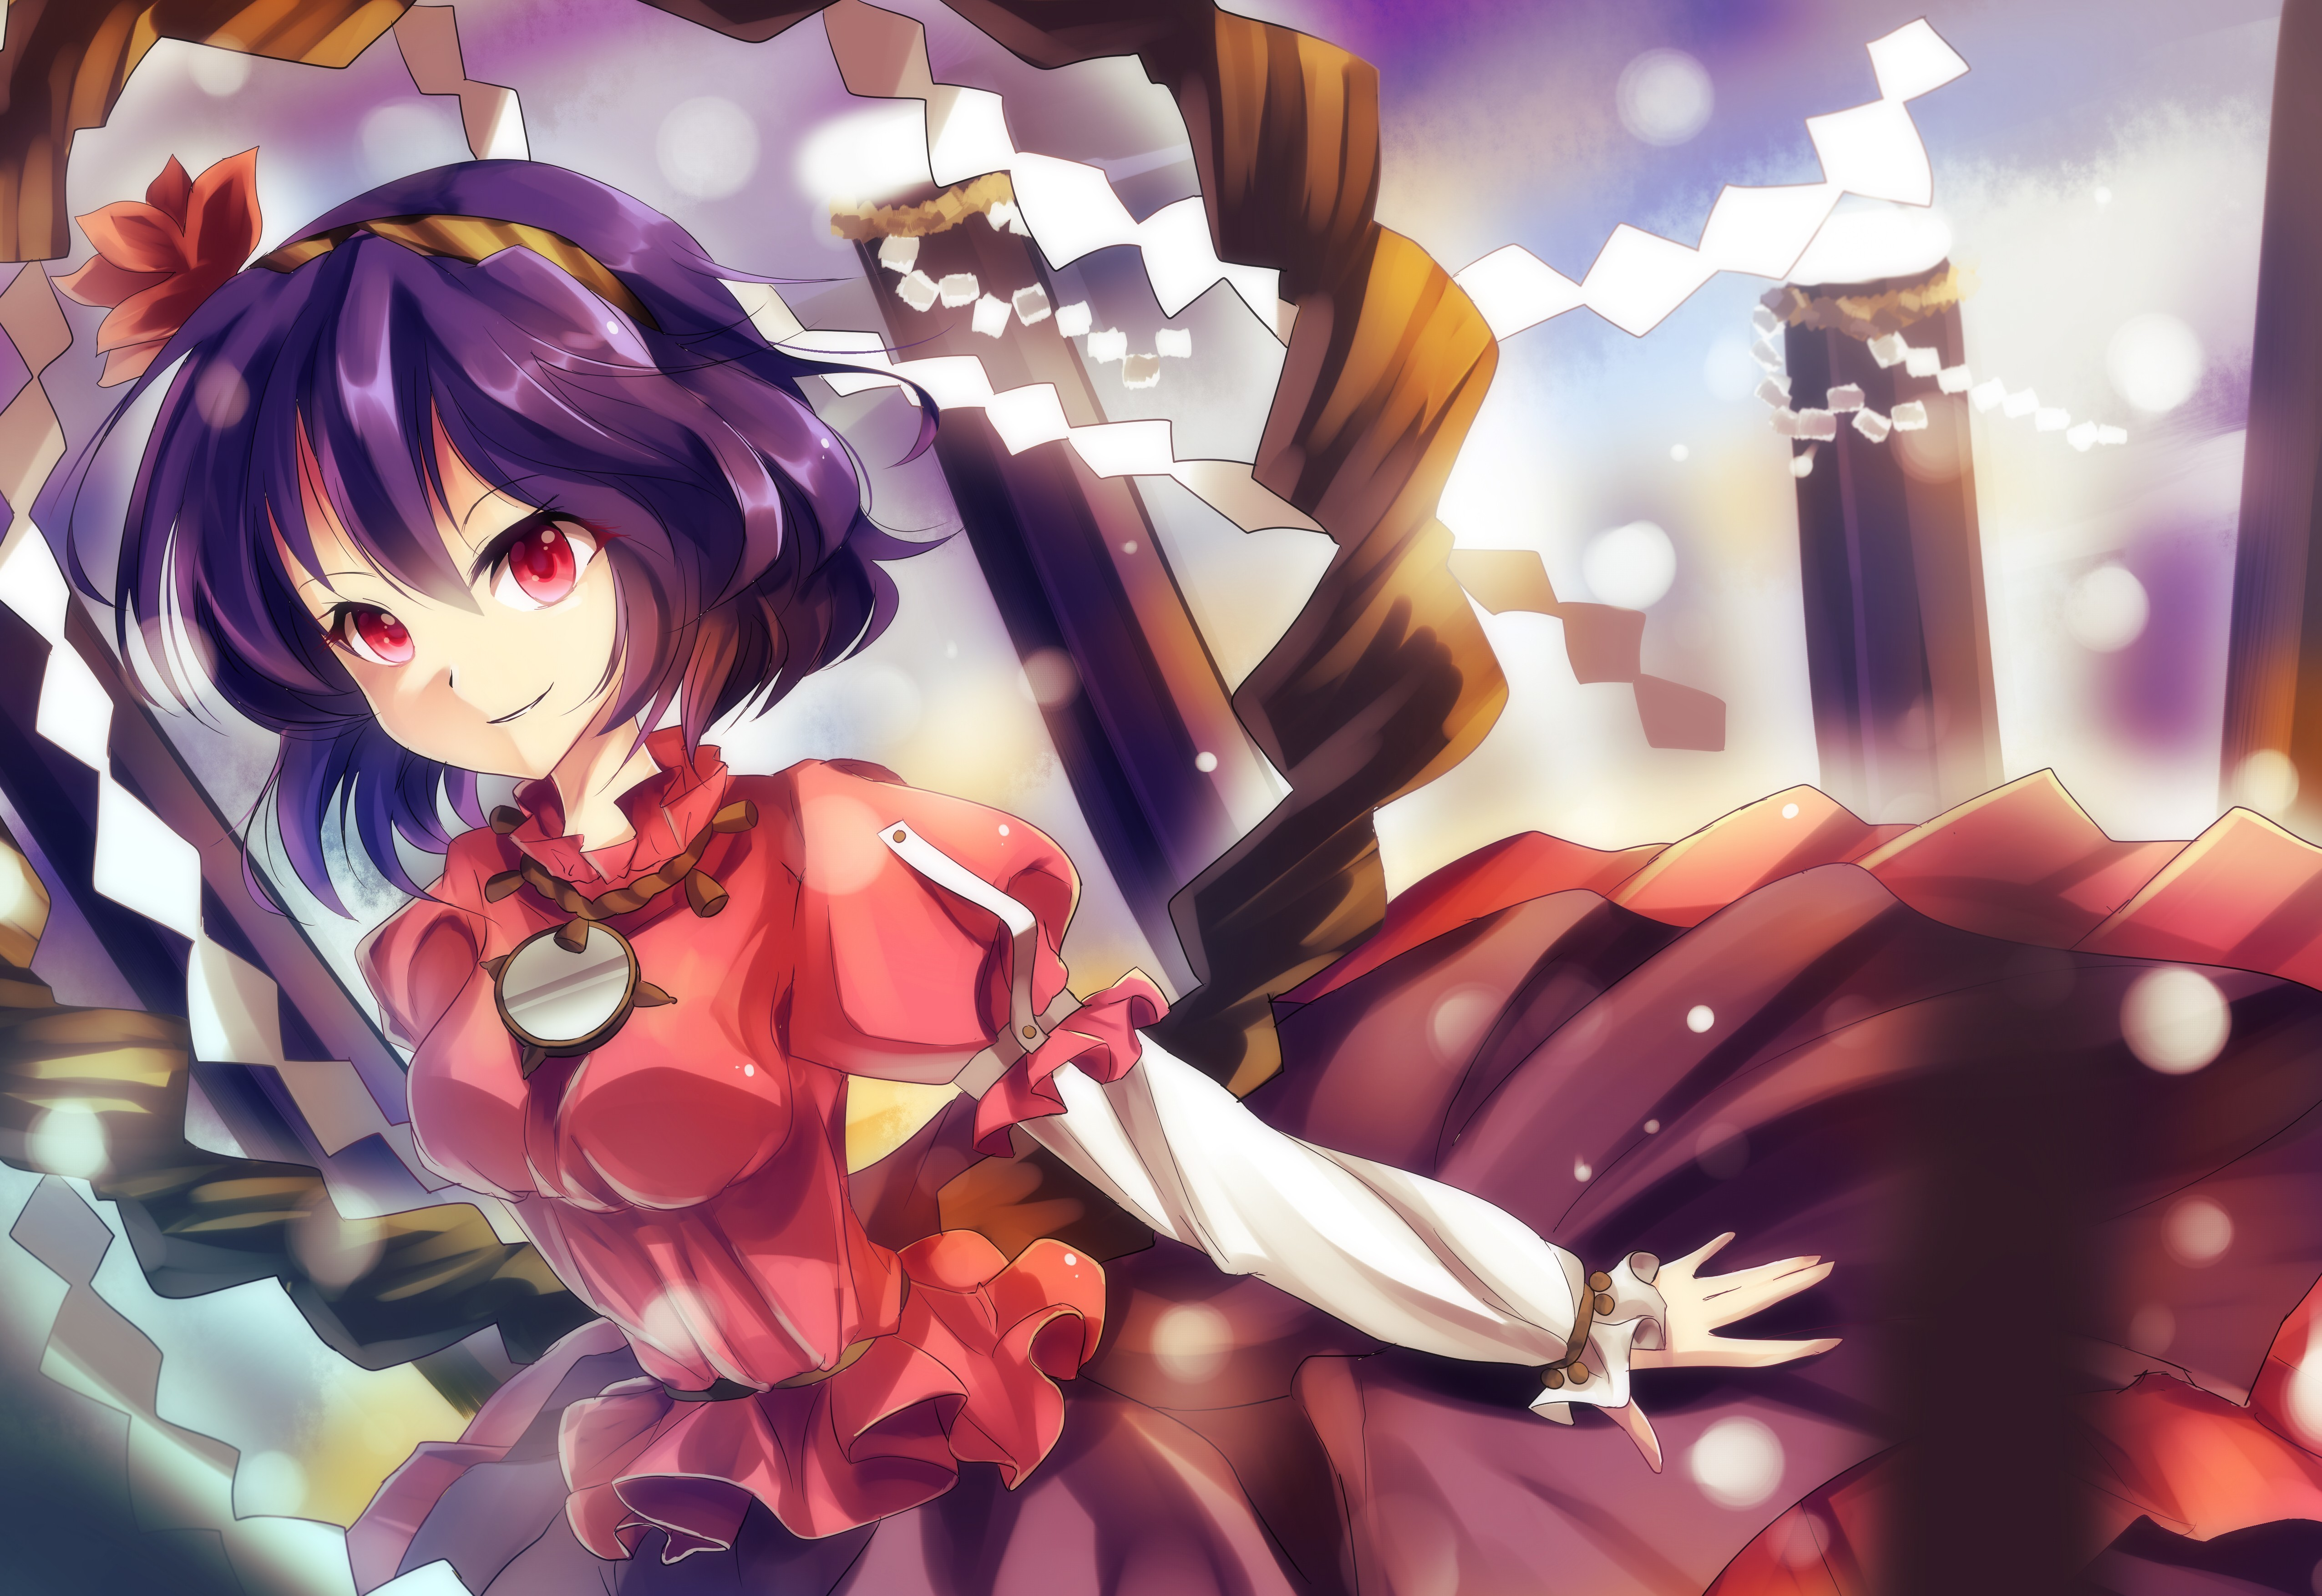 touhou leaves wind skirts HD Wallpaper